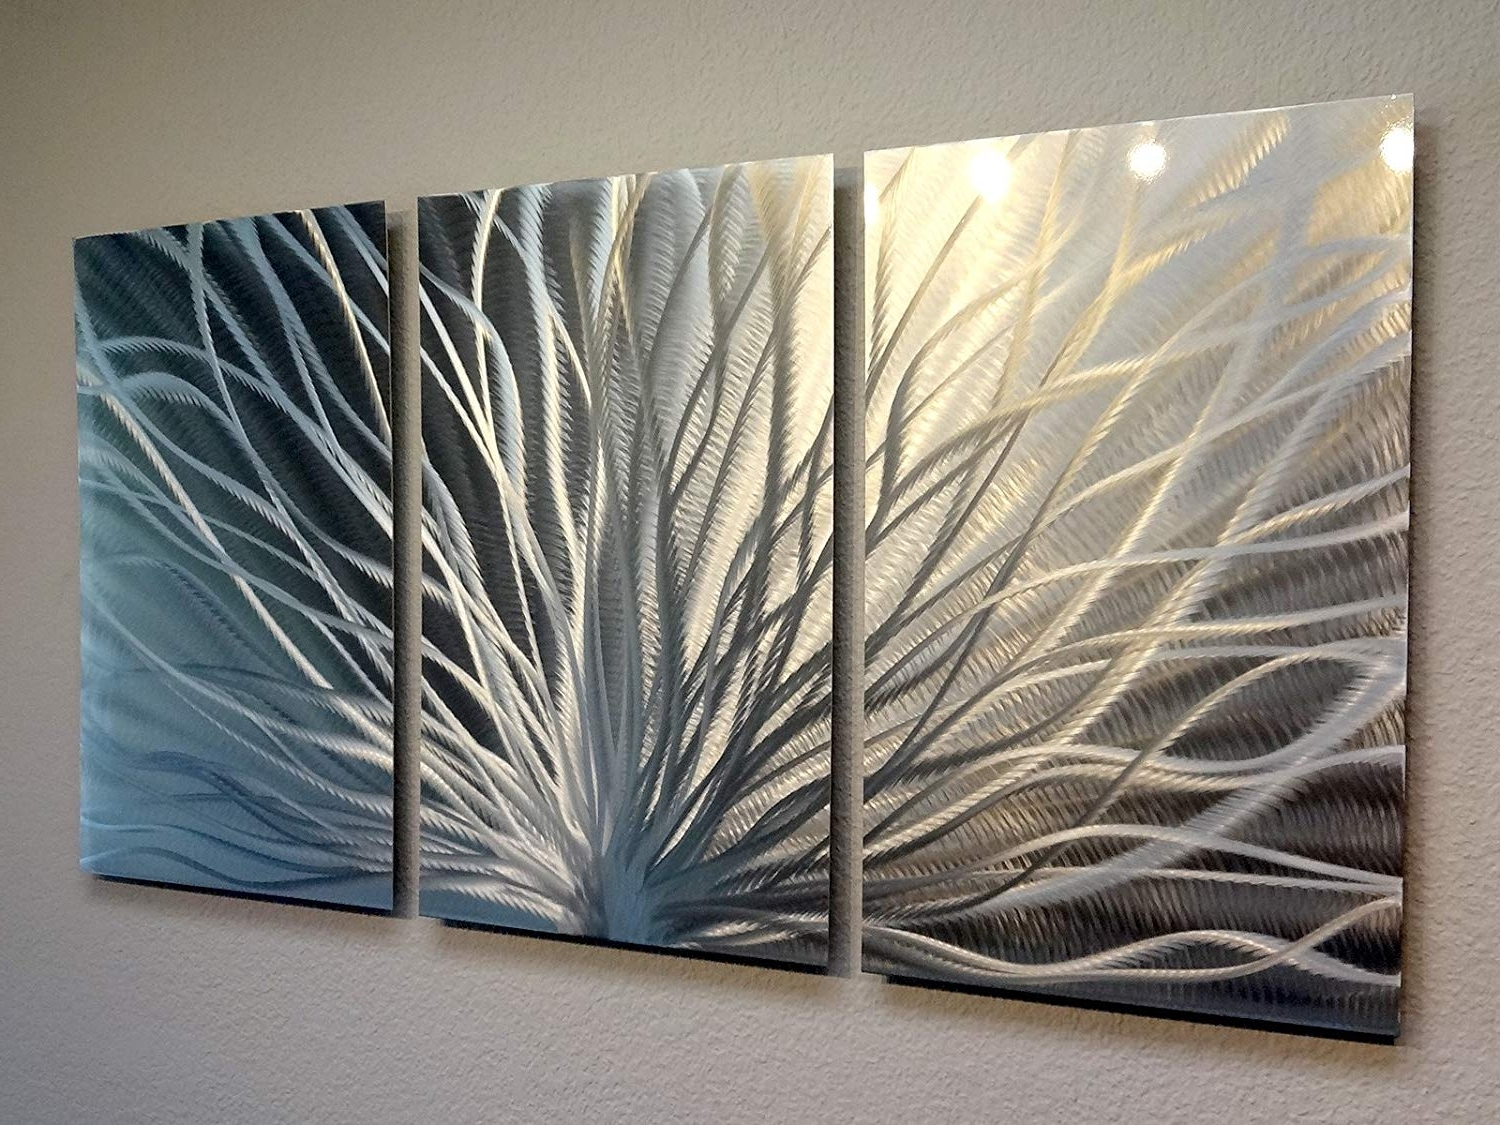 Recent Metal Wall Art Panels Pertaining To Amazon: Miles Shay Metal Wall Art, Modern Home Decor, Abstract (View 6 of 15)